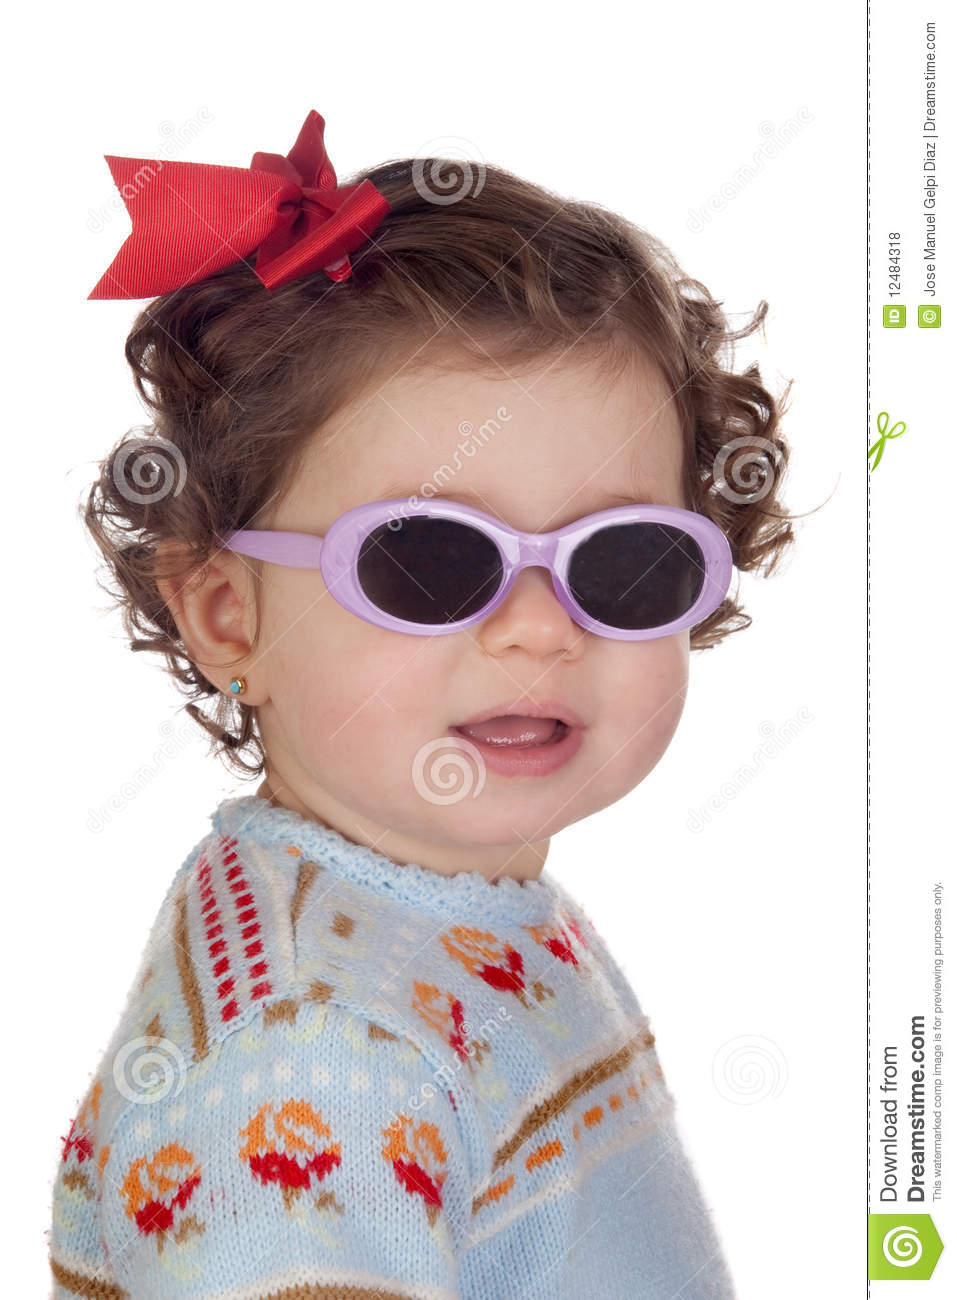 funny baby girl with sunglasses royalty free stock photos